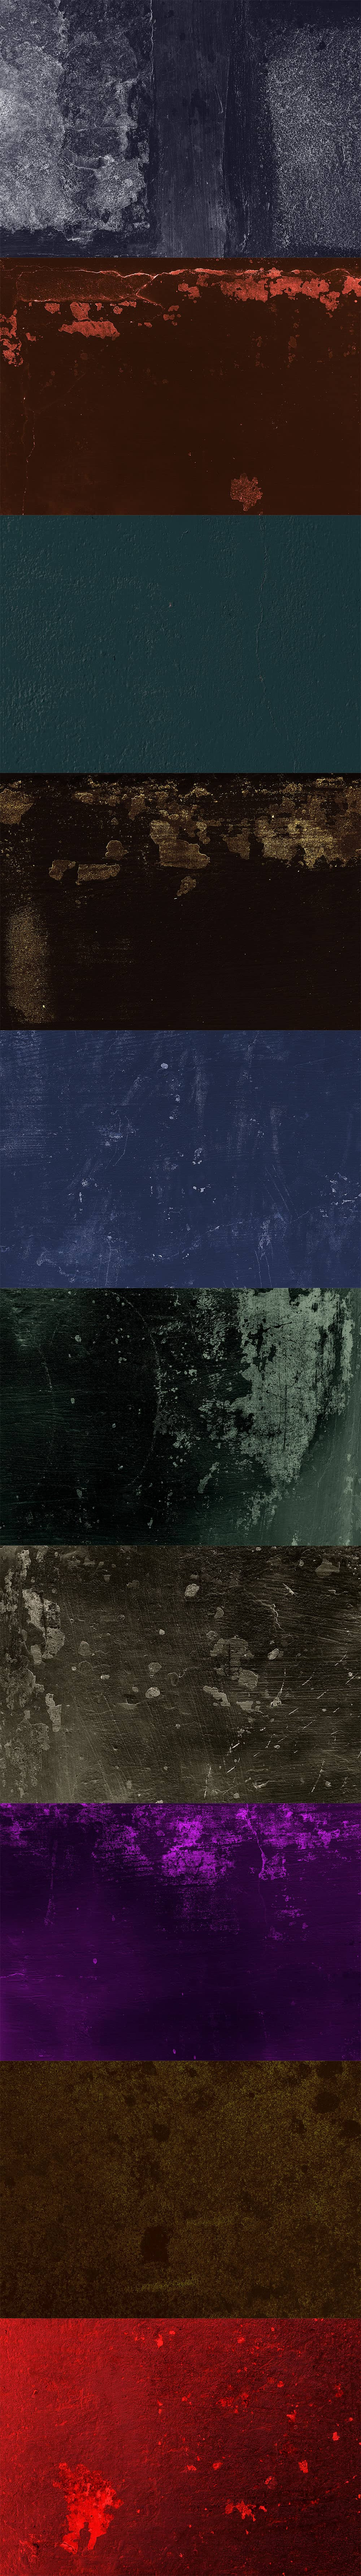 Free-Dramatic-Color-Grunge-Textures